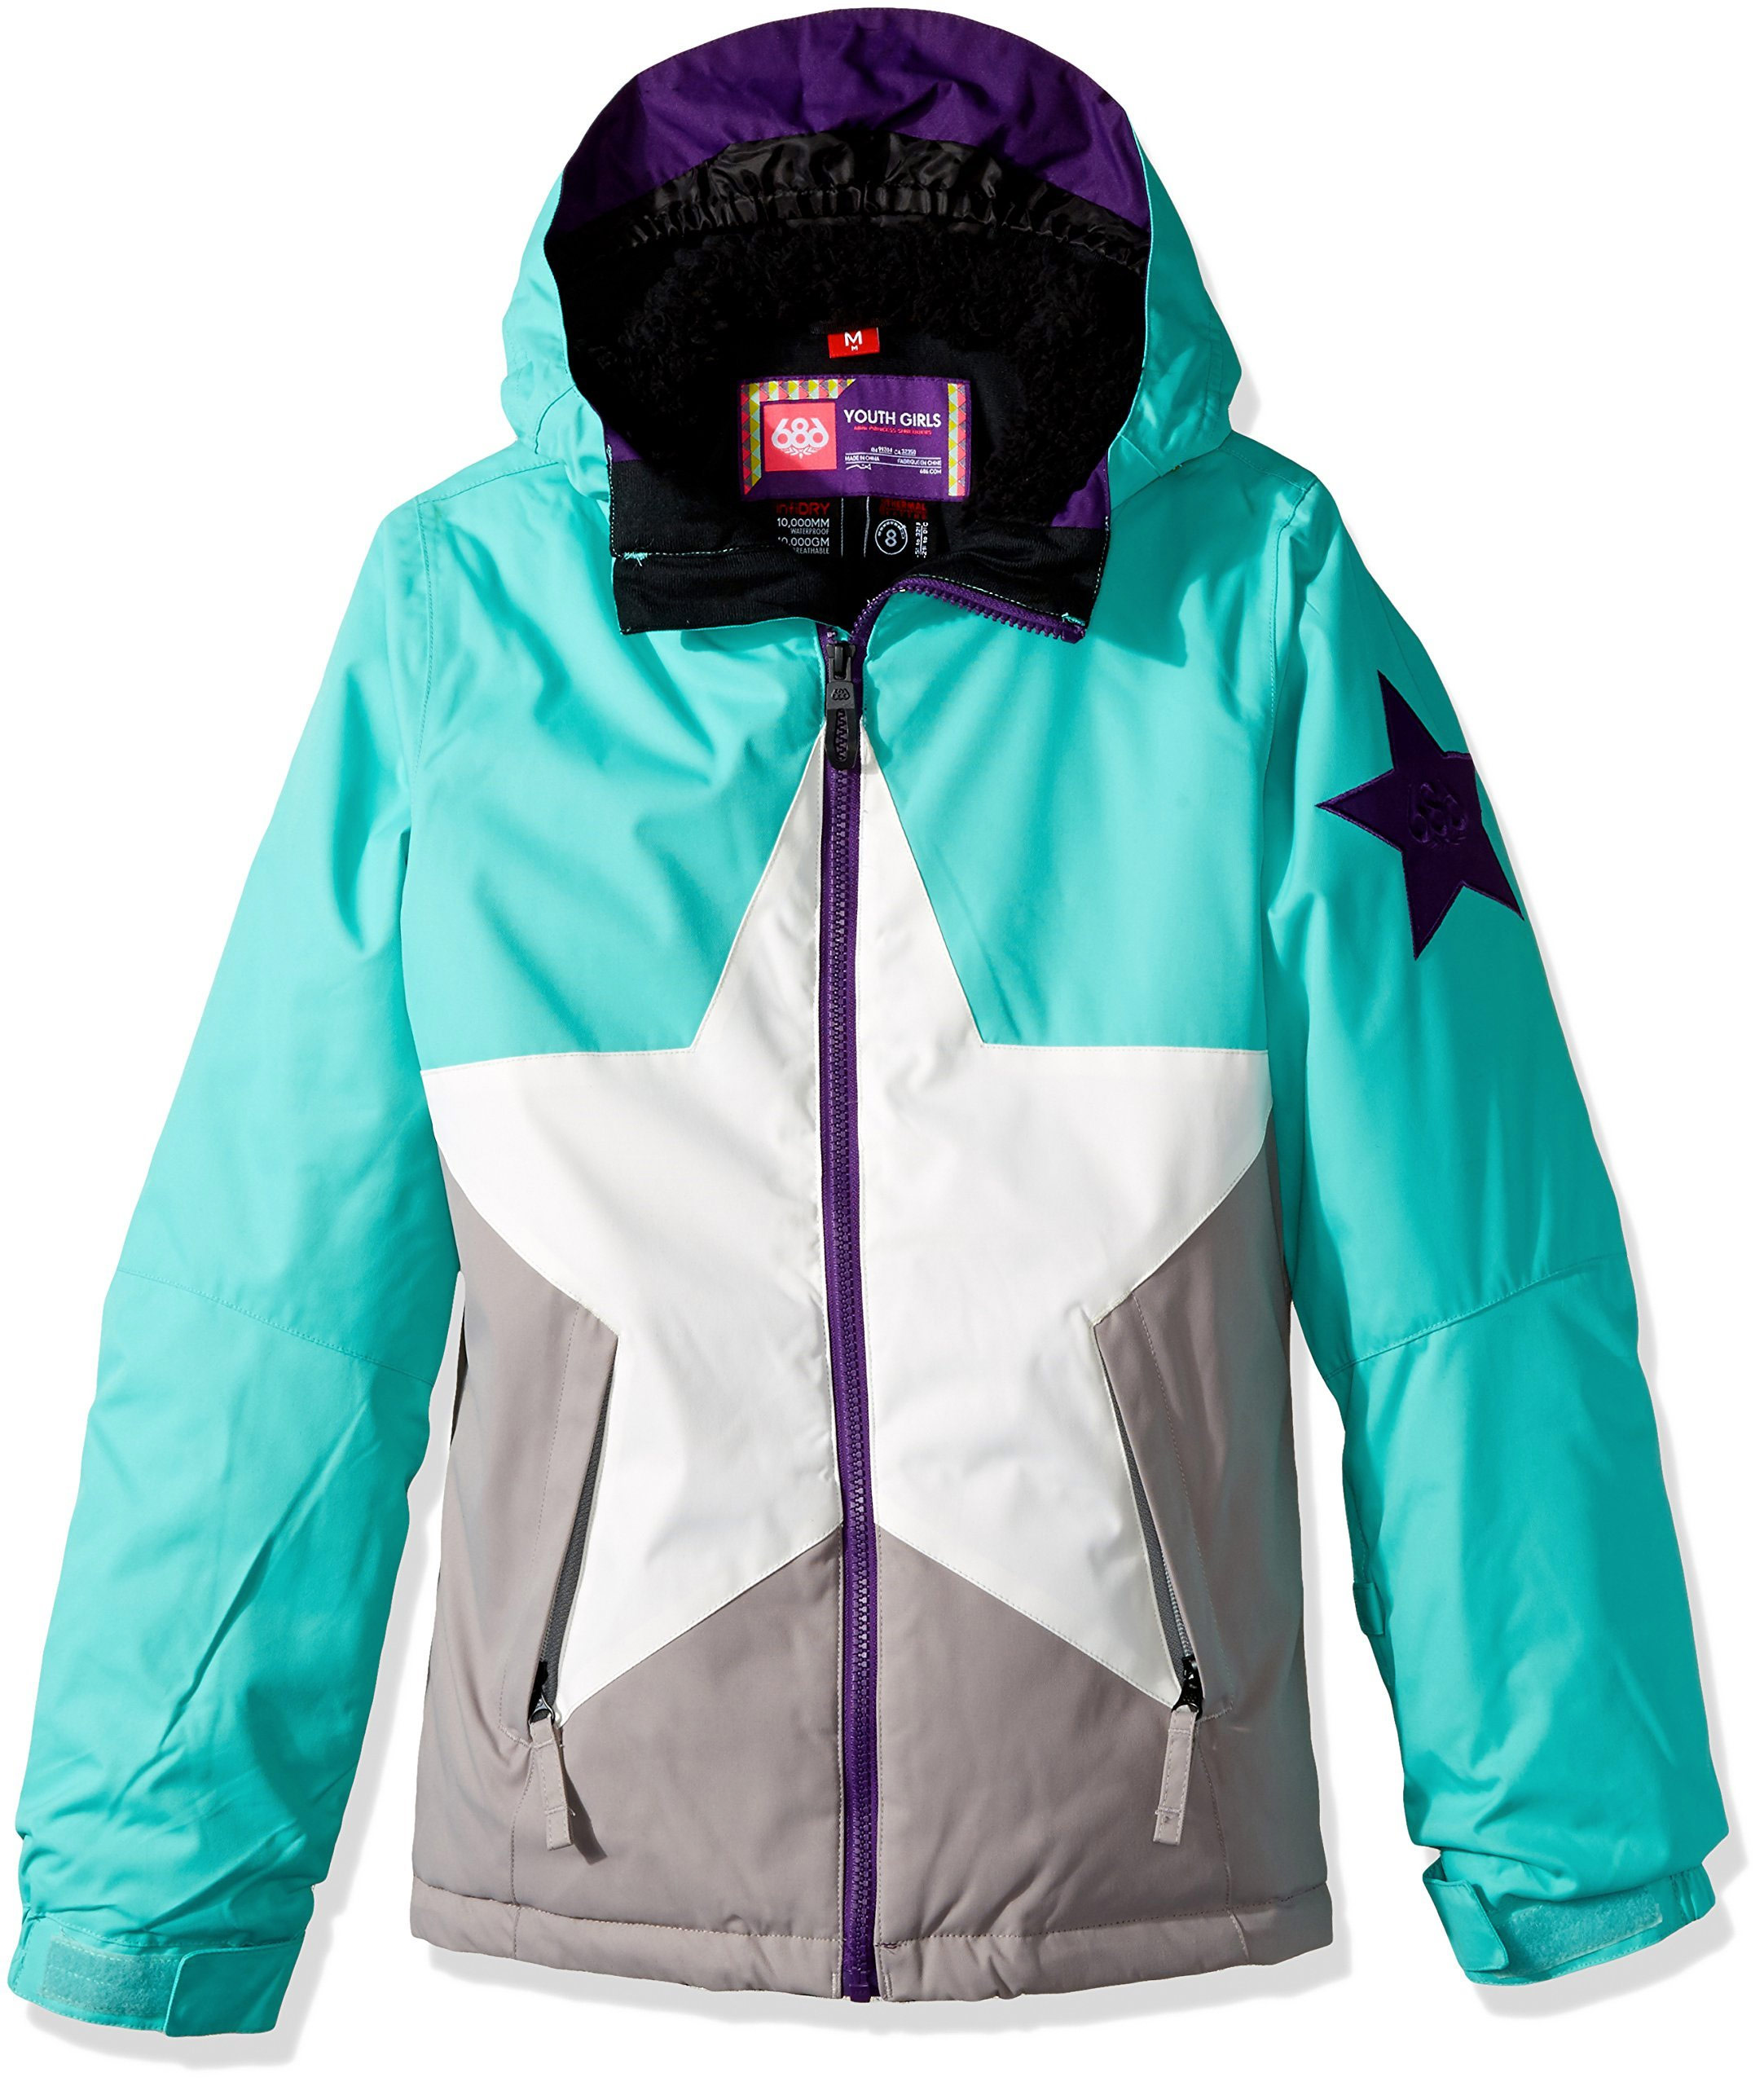 686 Star Insulated Snowboard Jacket